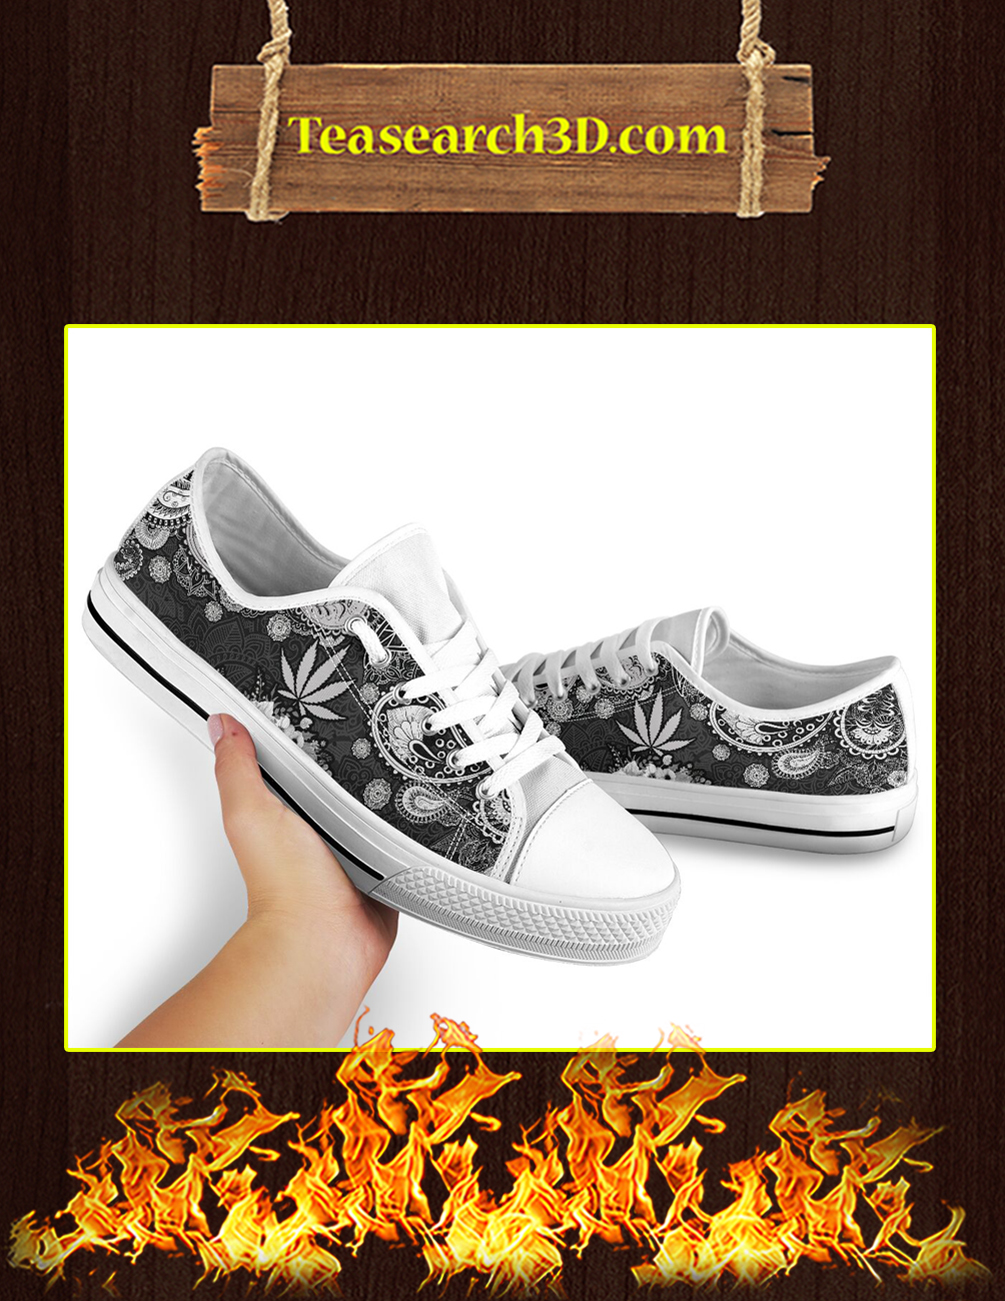 Cannabis Weed Low Top Shoes pic 2